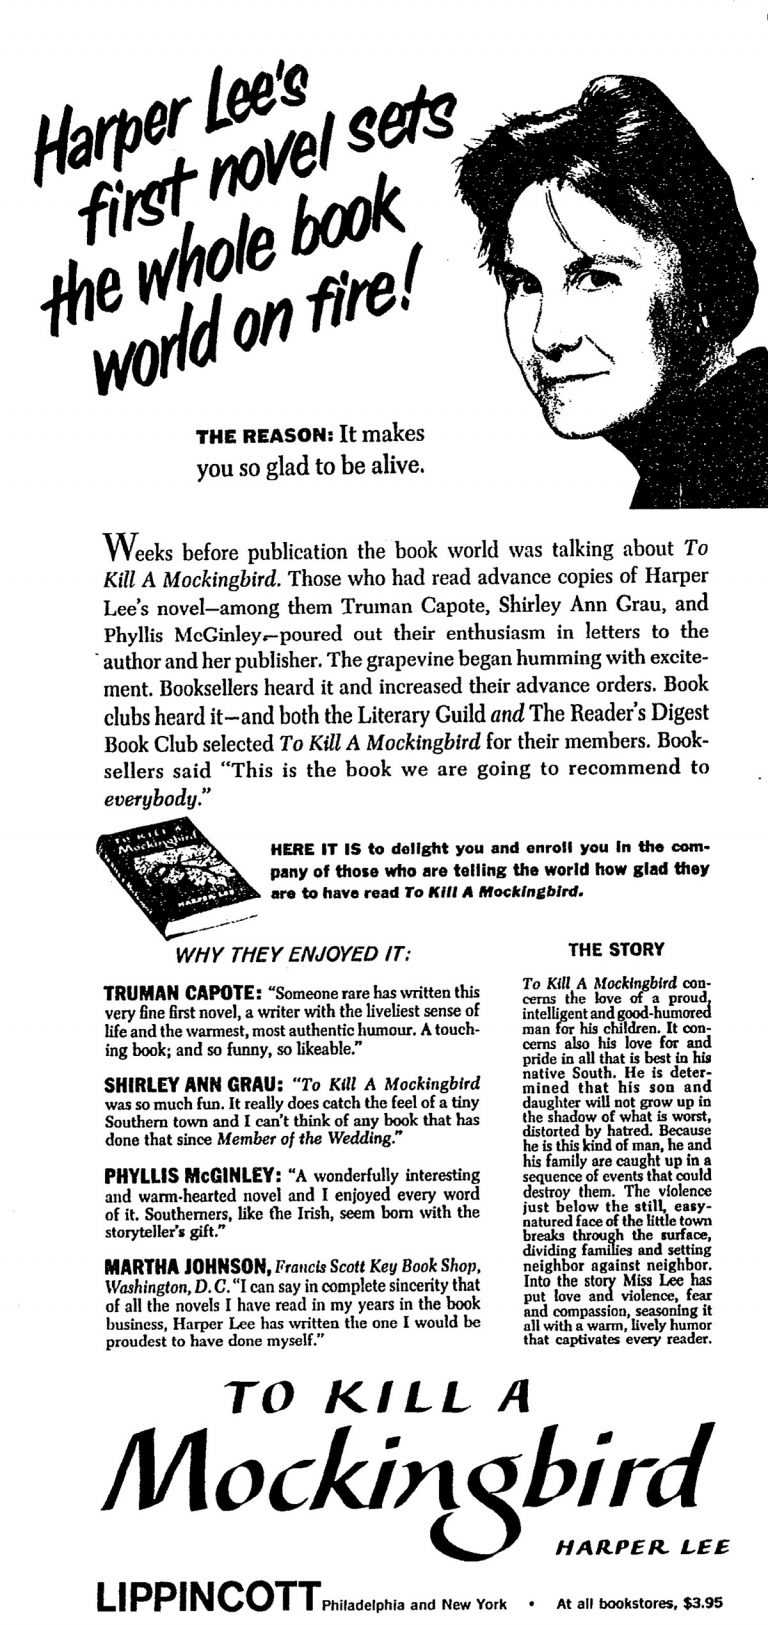 A New York Times advertisement announcing the publication of To Kill a Mockingbird by Harper Lee, which ran on July 17, 1960.